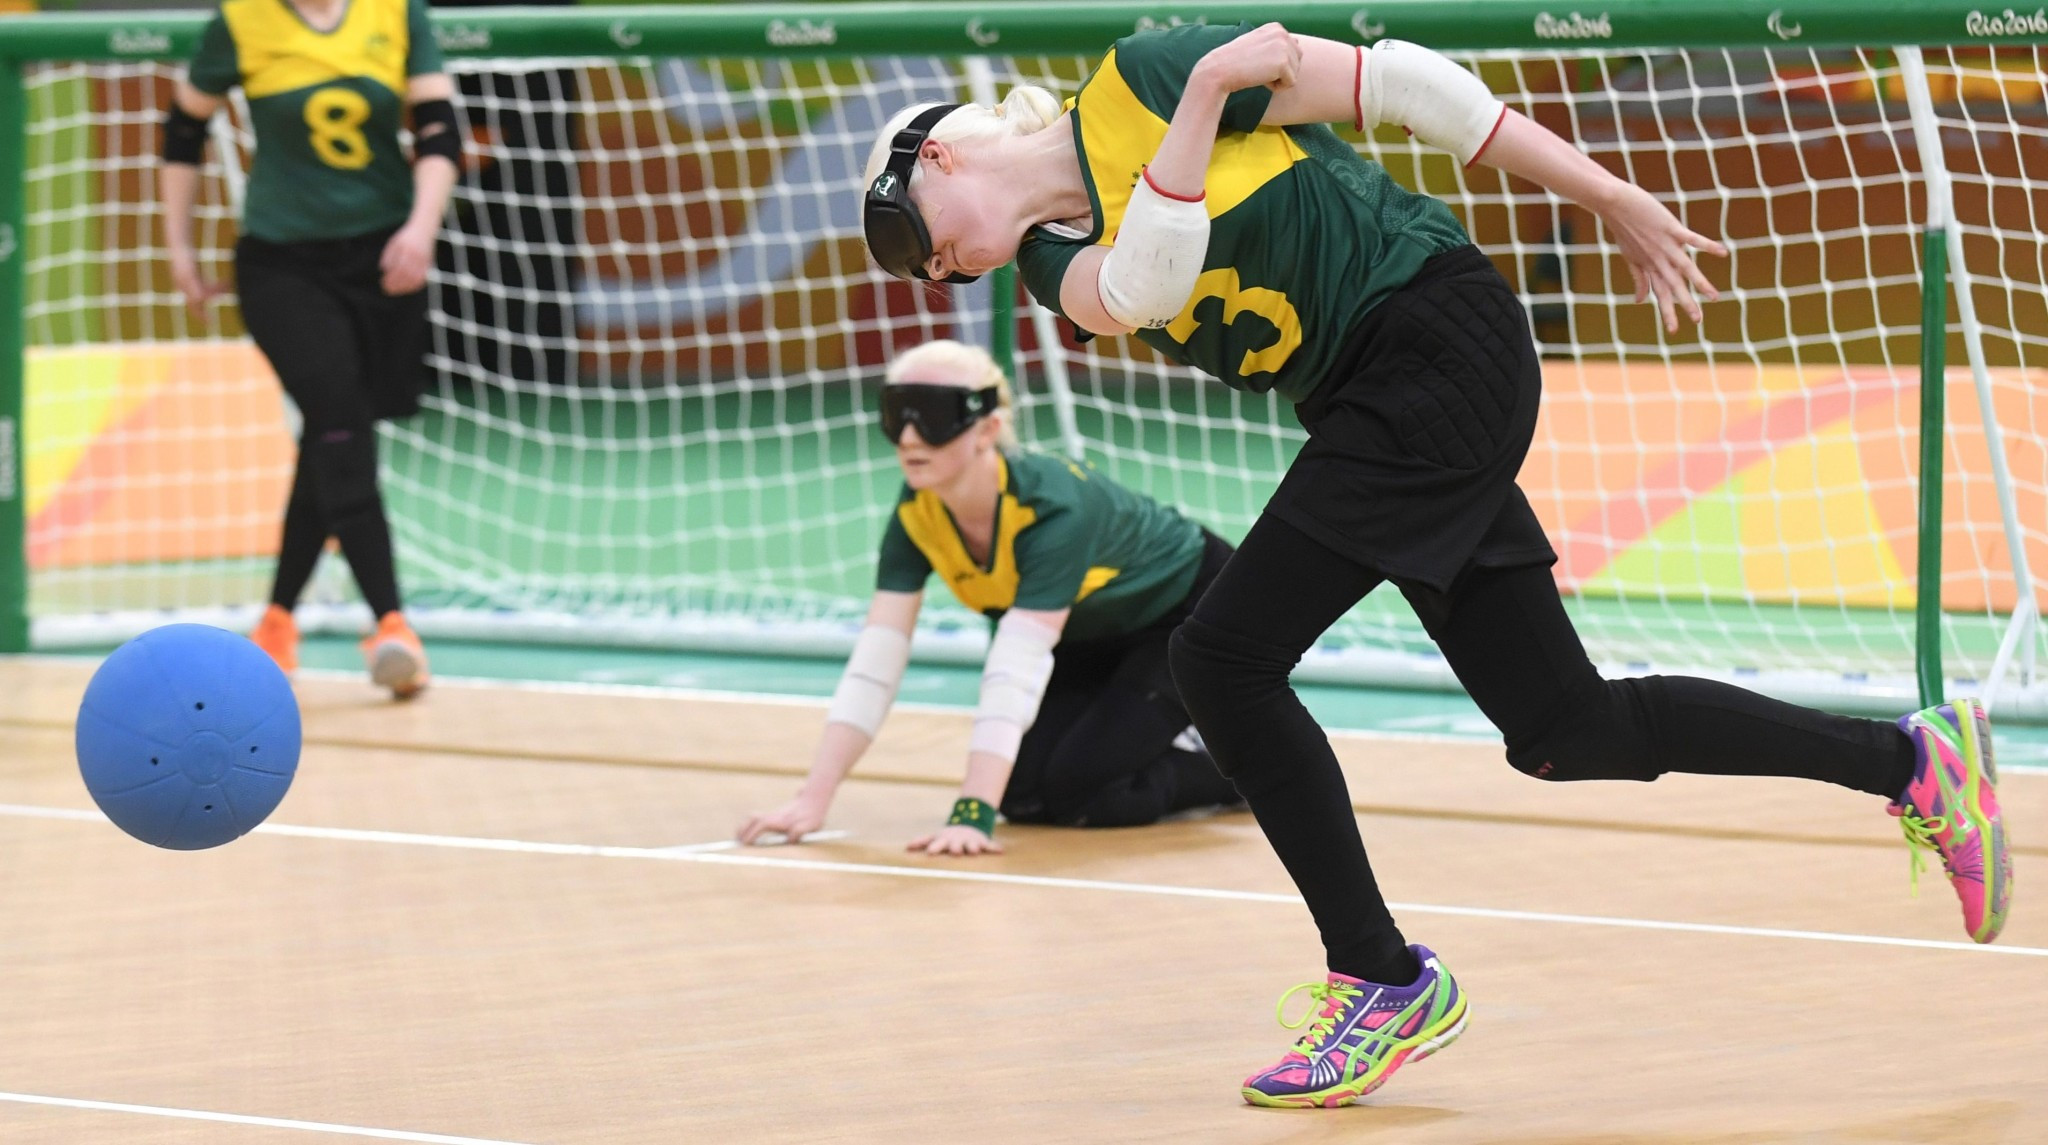 Australia goalball coach admits qualification for IBSA World Championships will be difficult